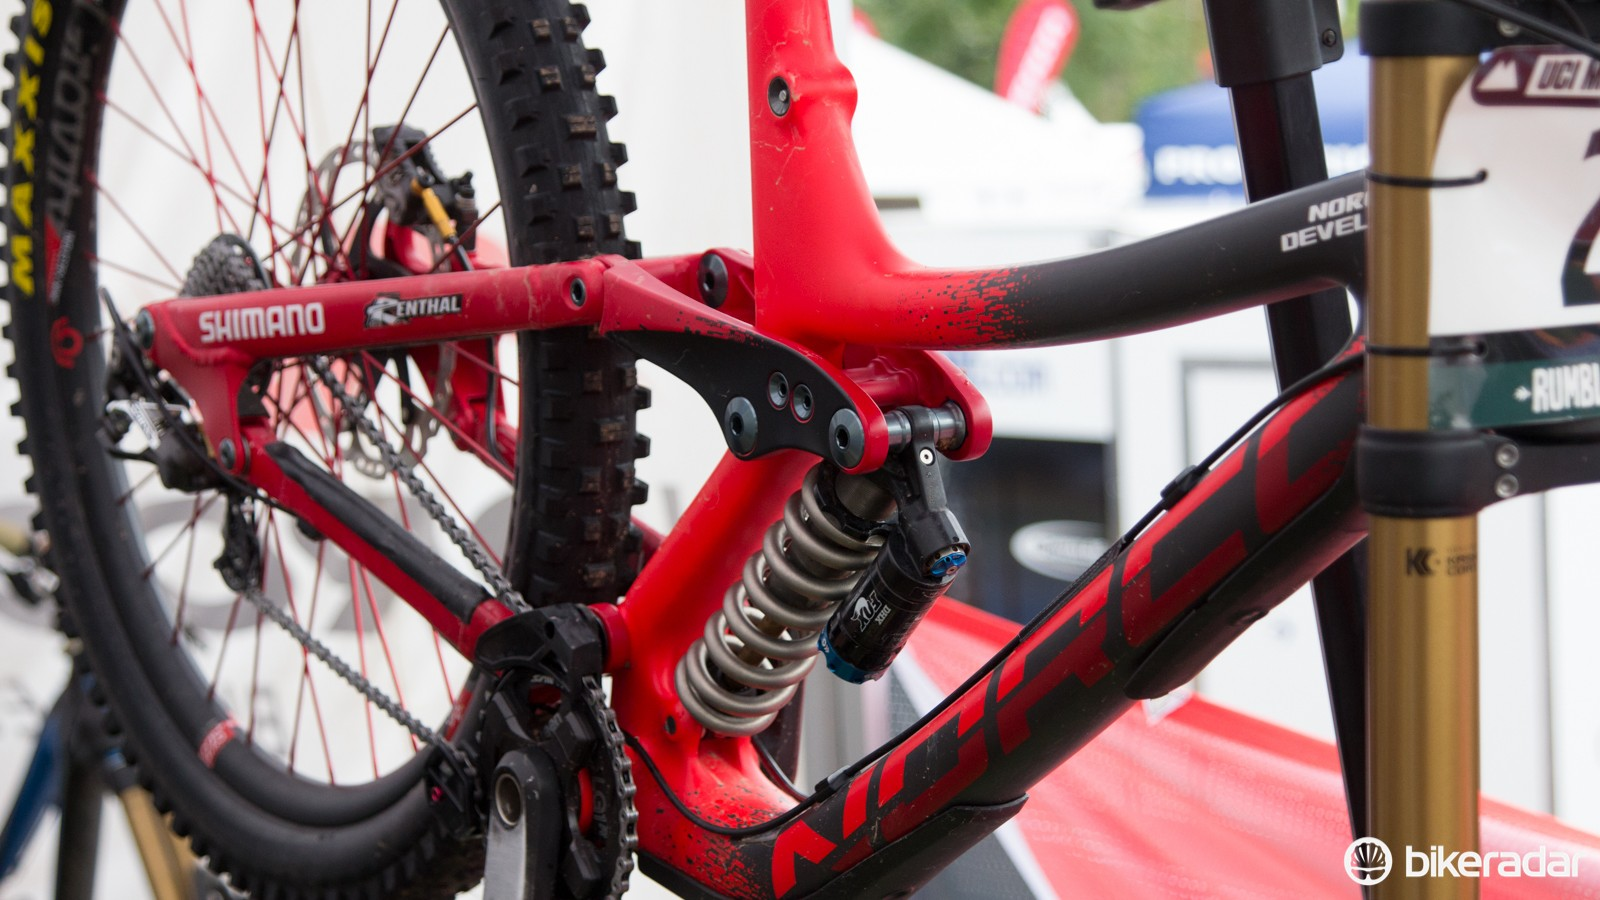 Norco is one example of a brand testing carbon prototypes through the downhill season